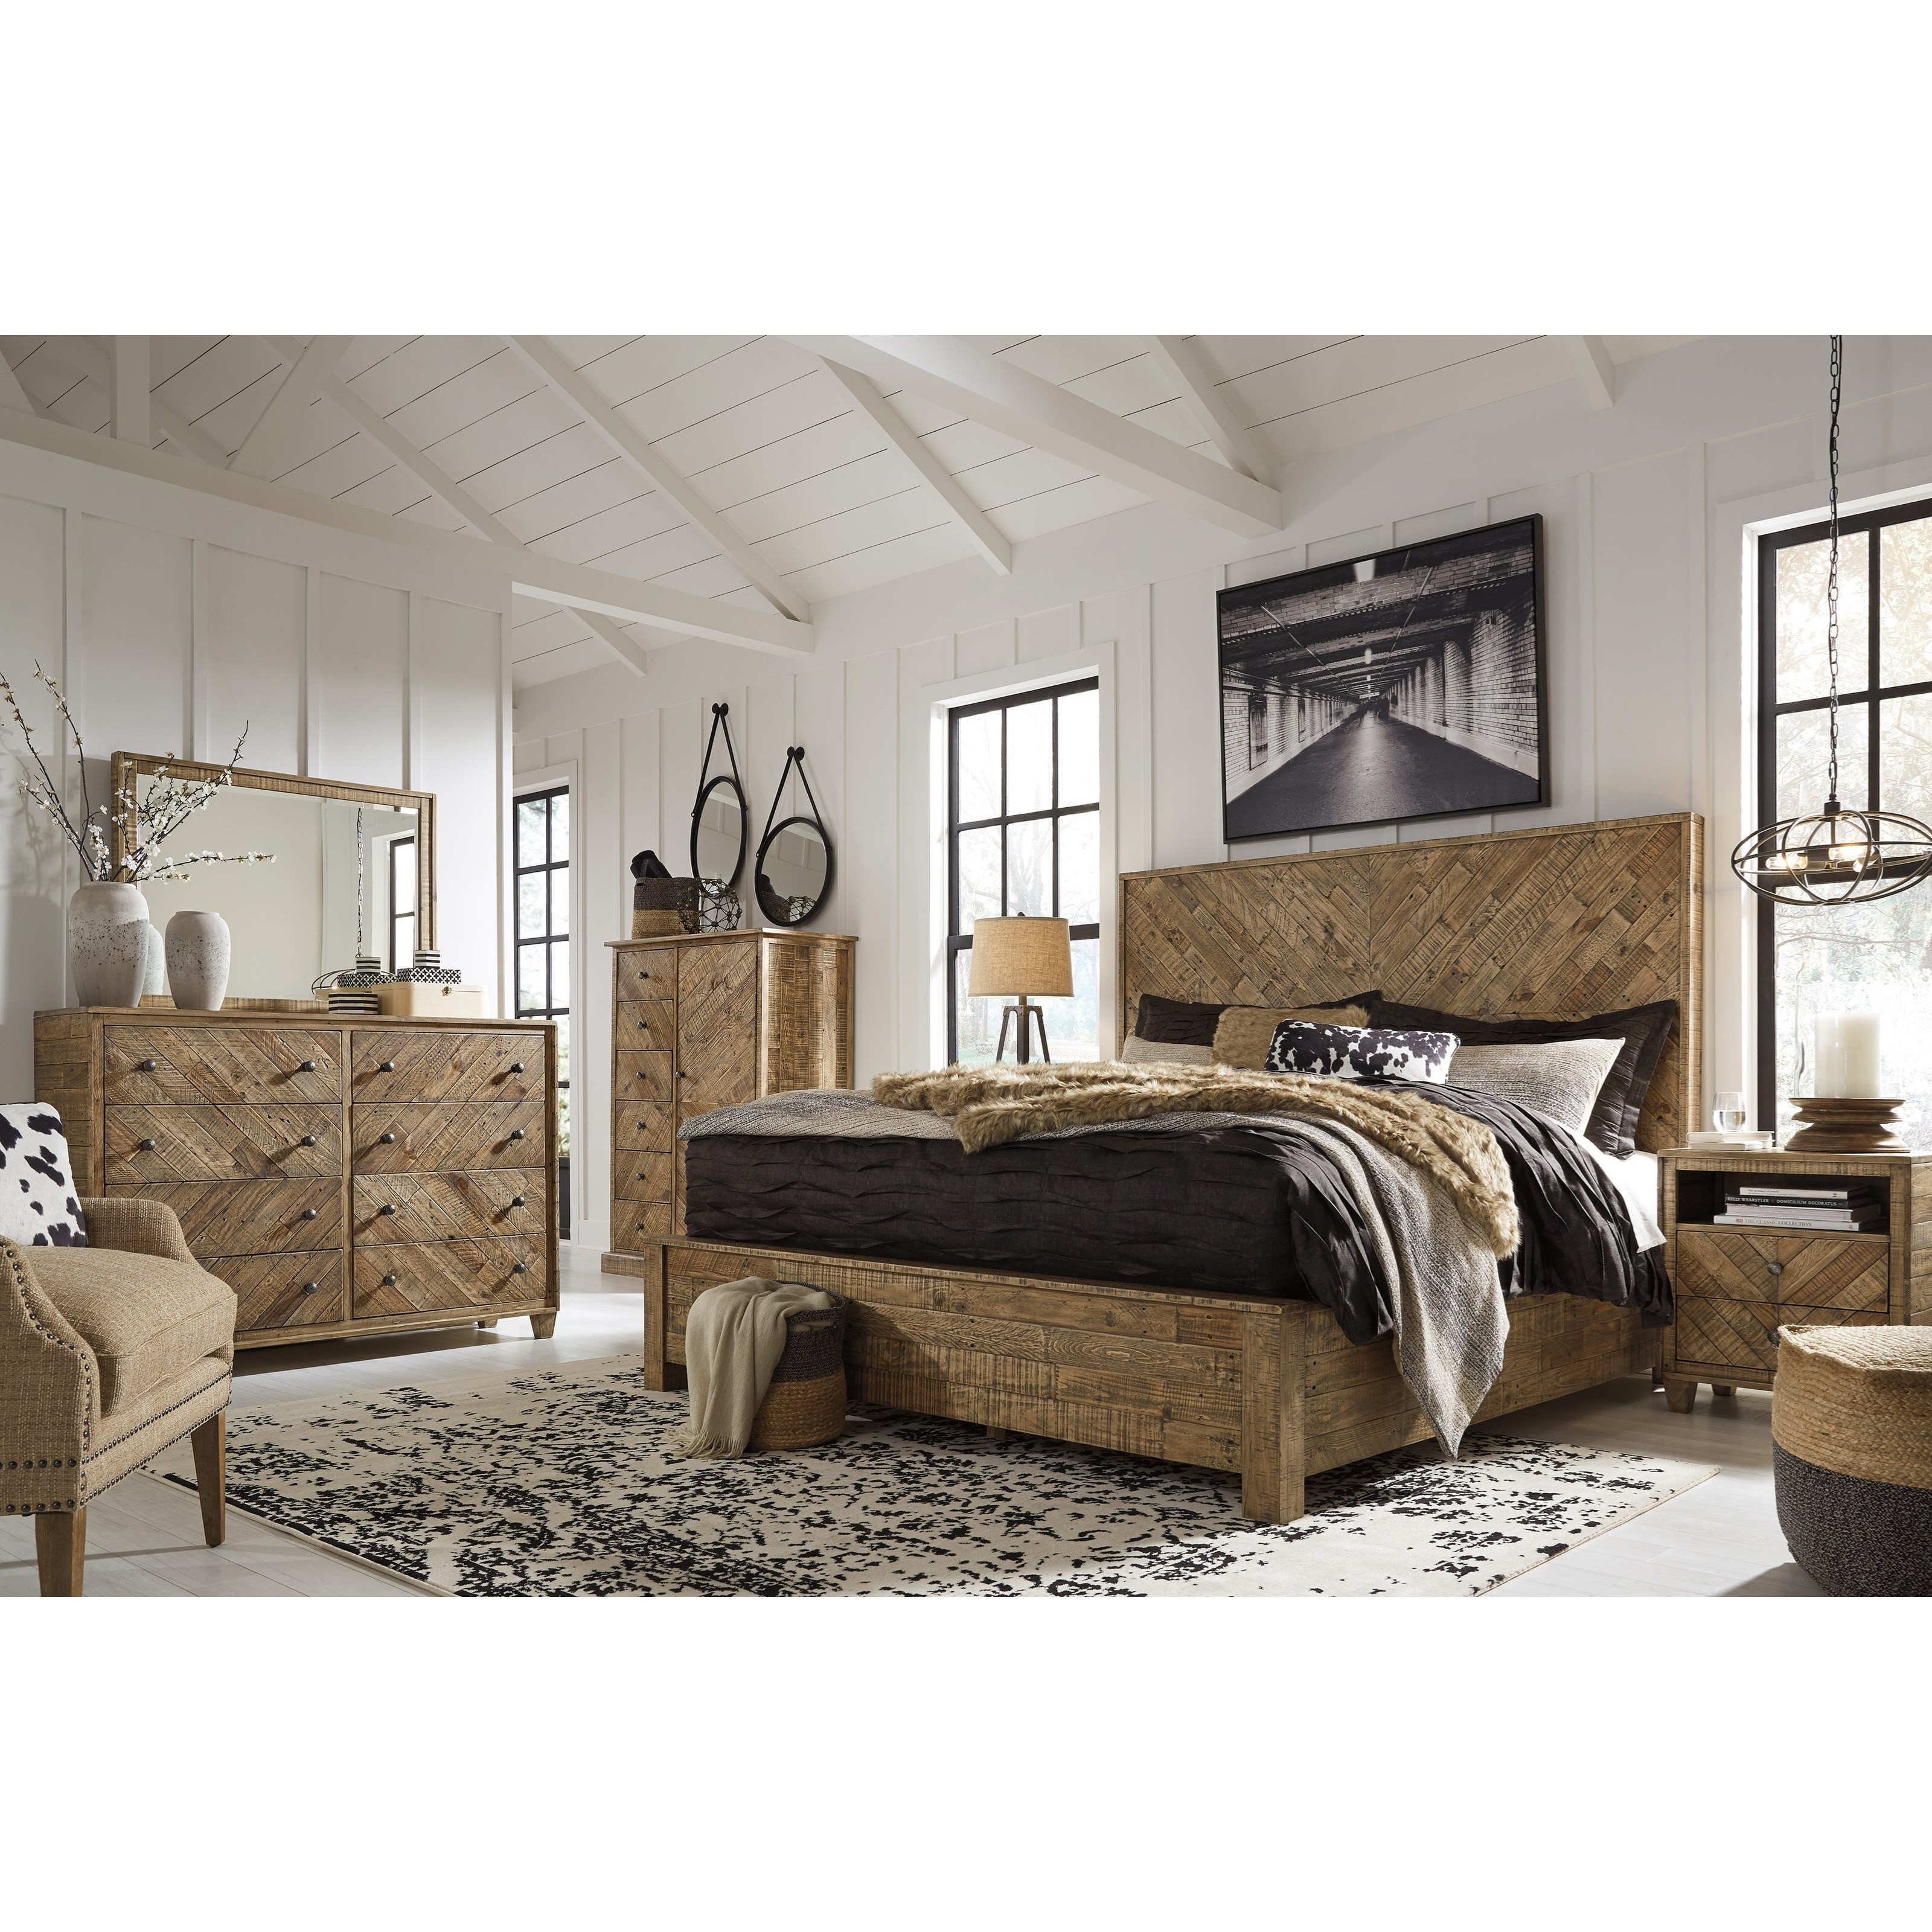 Ashley Furniture Bedroom Furniture: Signature Design By Ashley Grindleburg Queen Bedroom Group